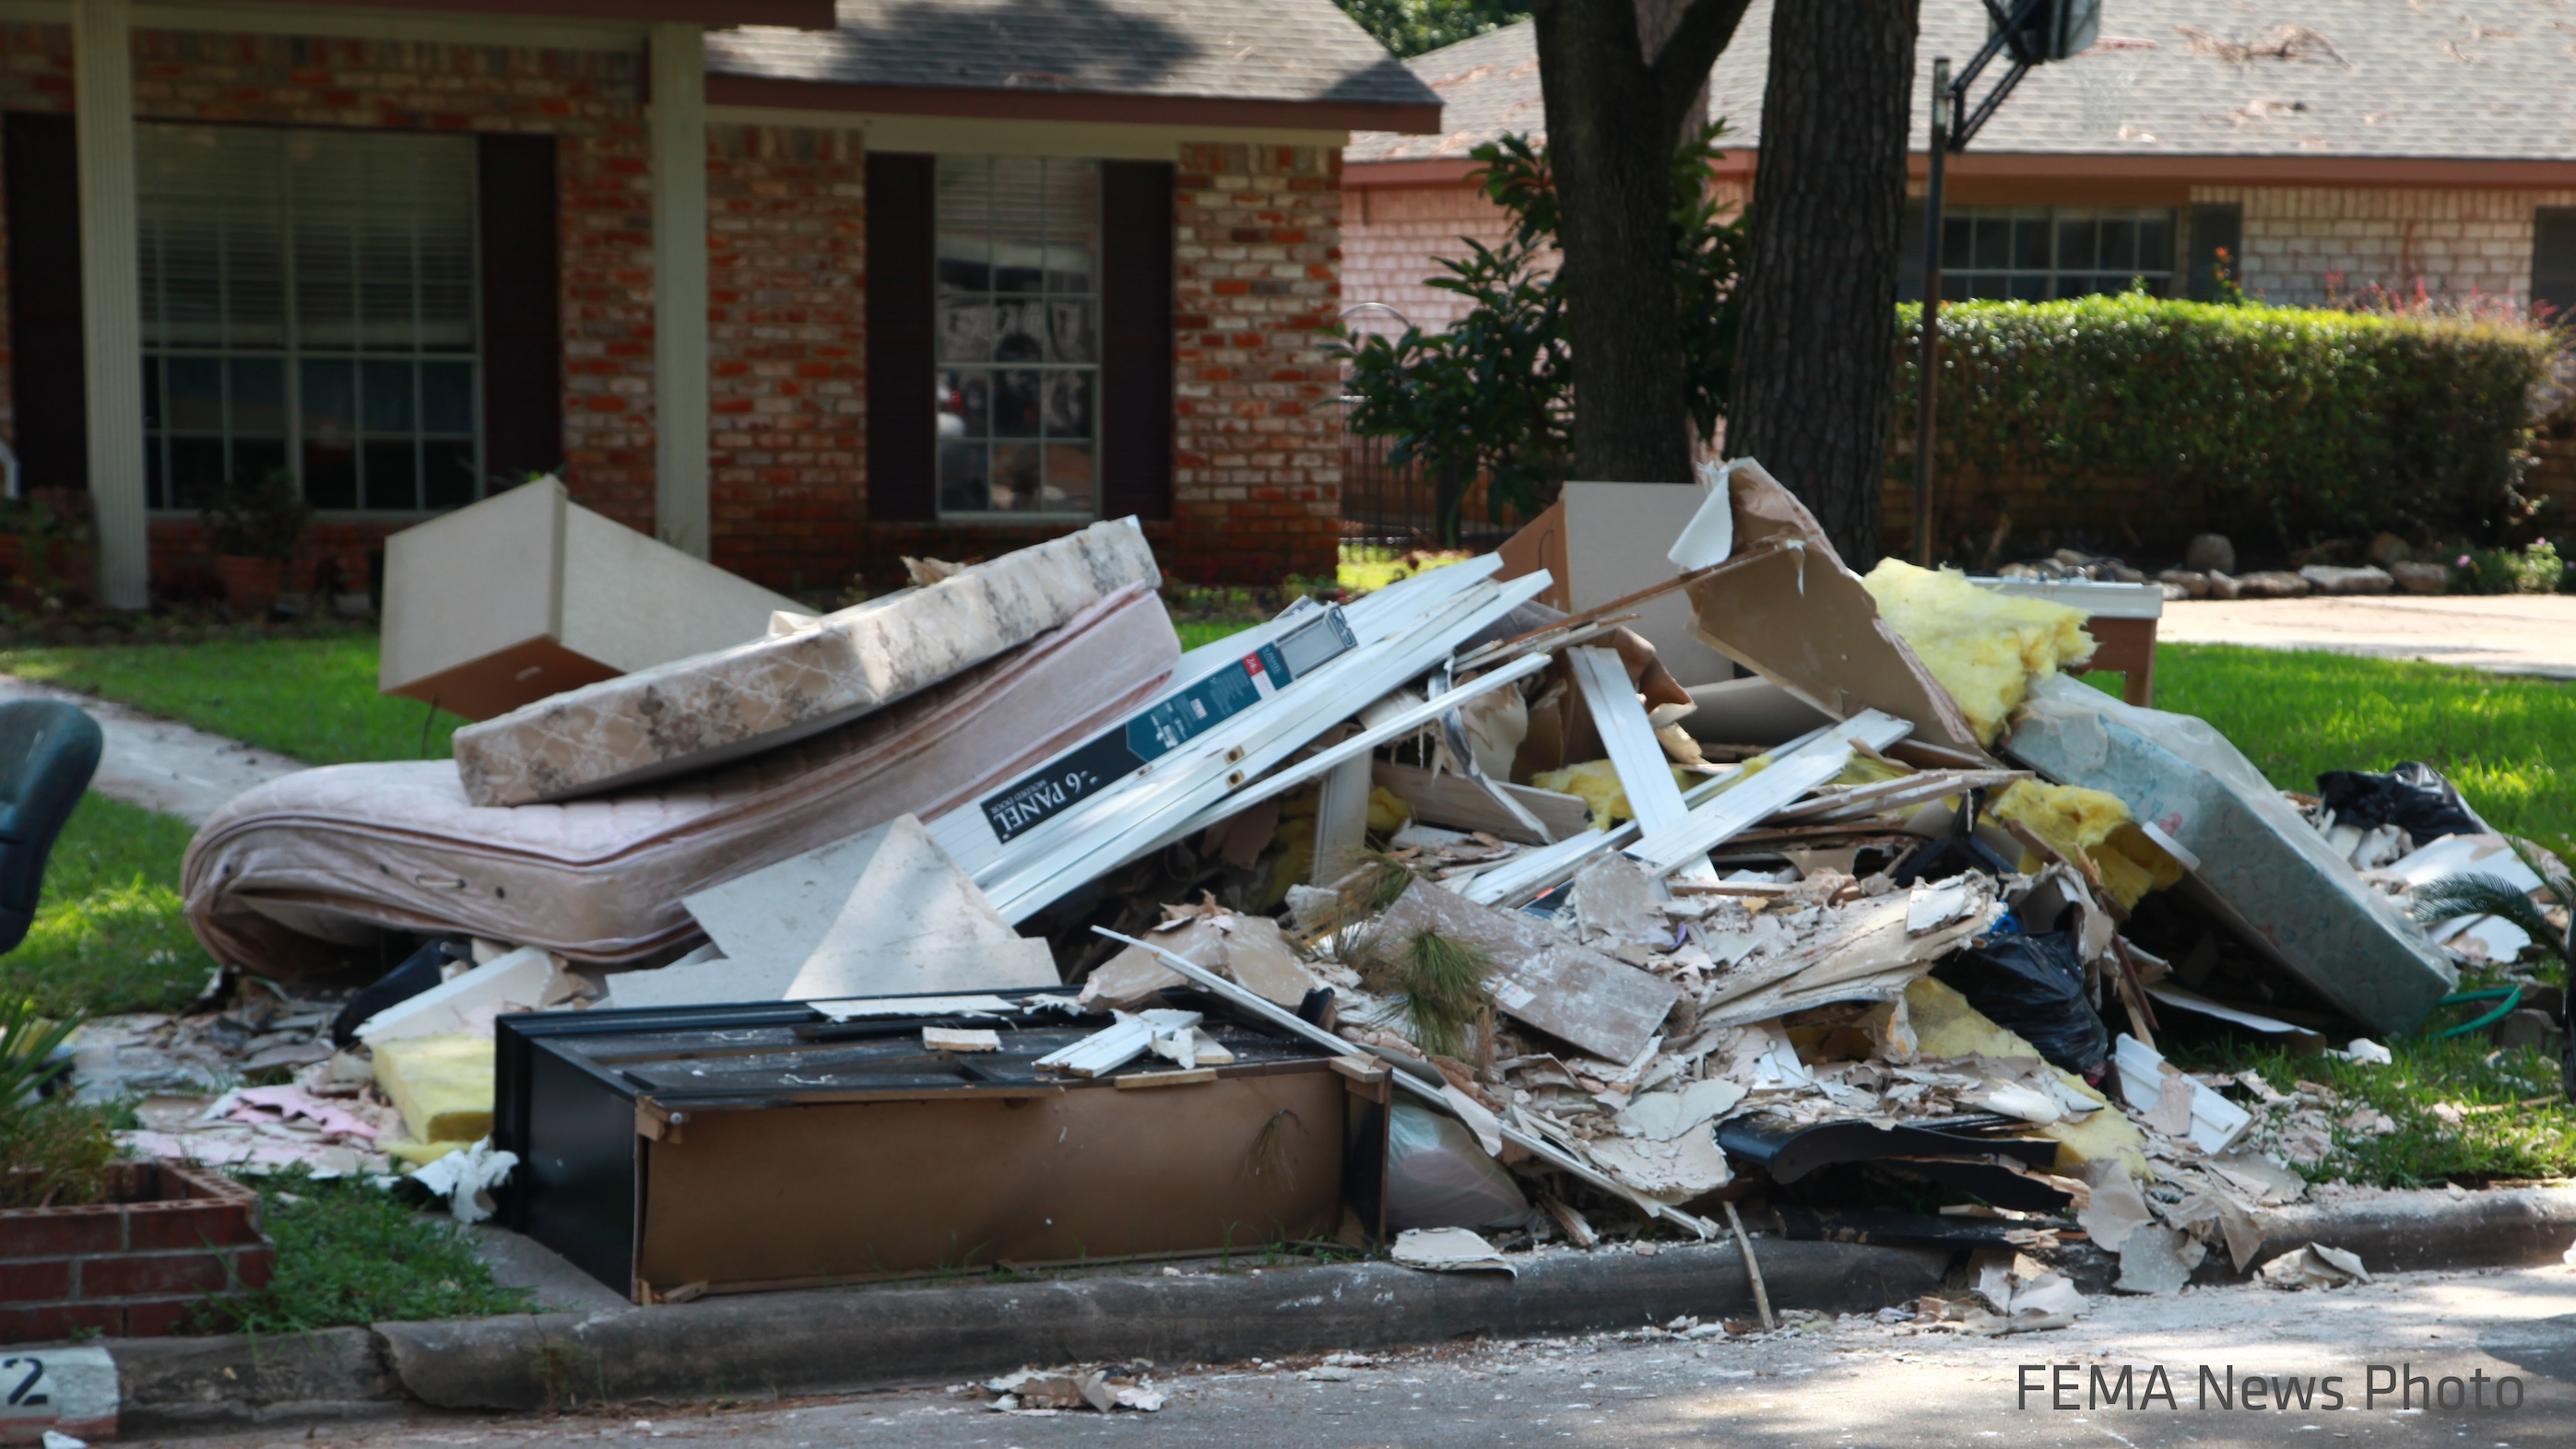 3K Rubble In Front Of Home Fema Copy